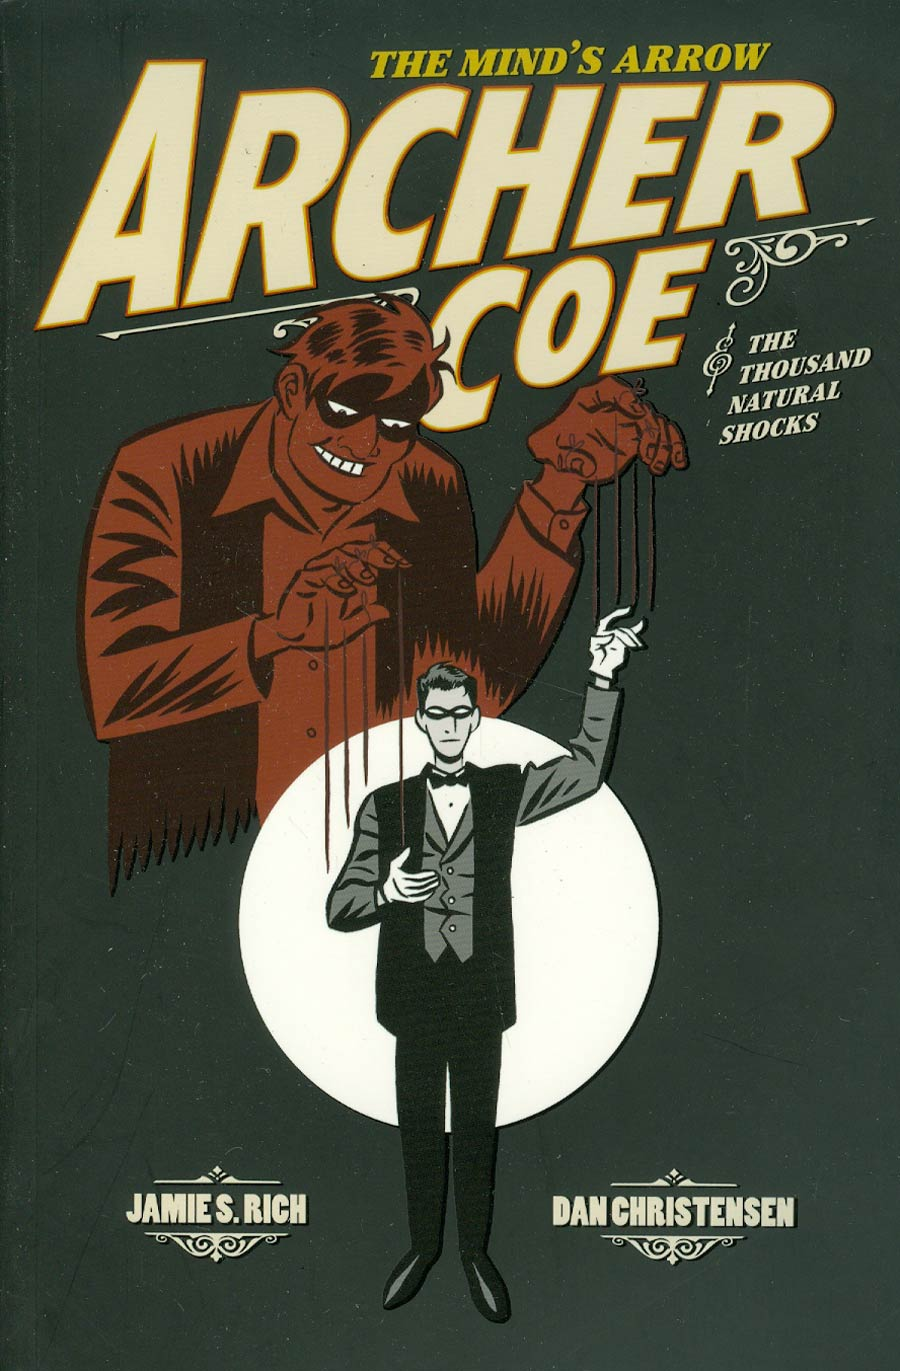 Archer Coe Vol 1 Archer Coe And The Thousand Natural Shocks TP